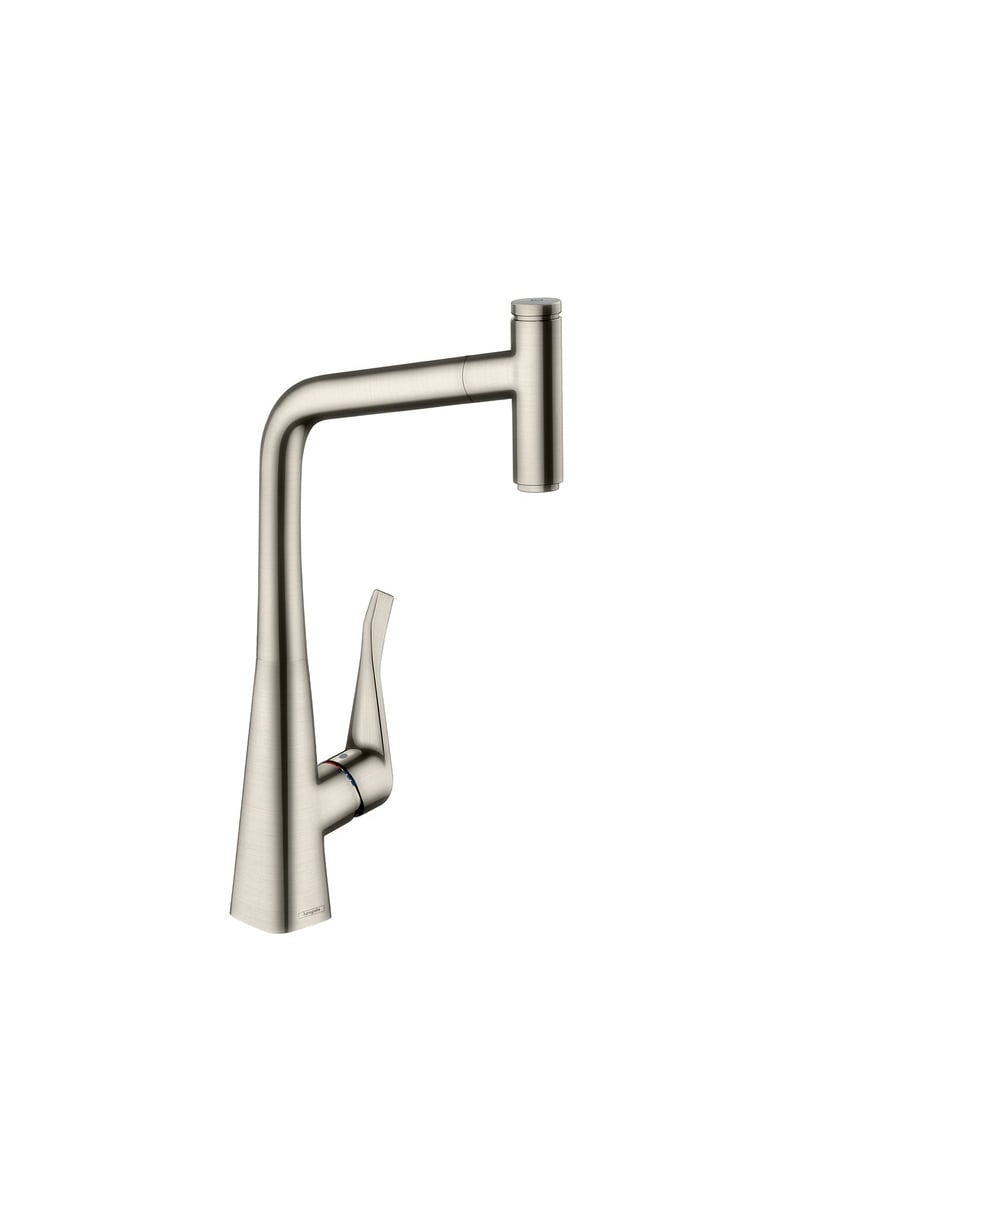 Hansgrohe Metris Select Single Lever Kitchen Mixer 320 With Pull Out Spout